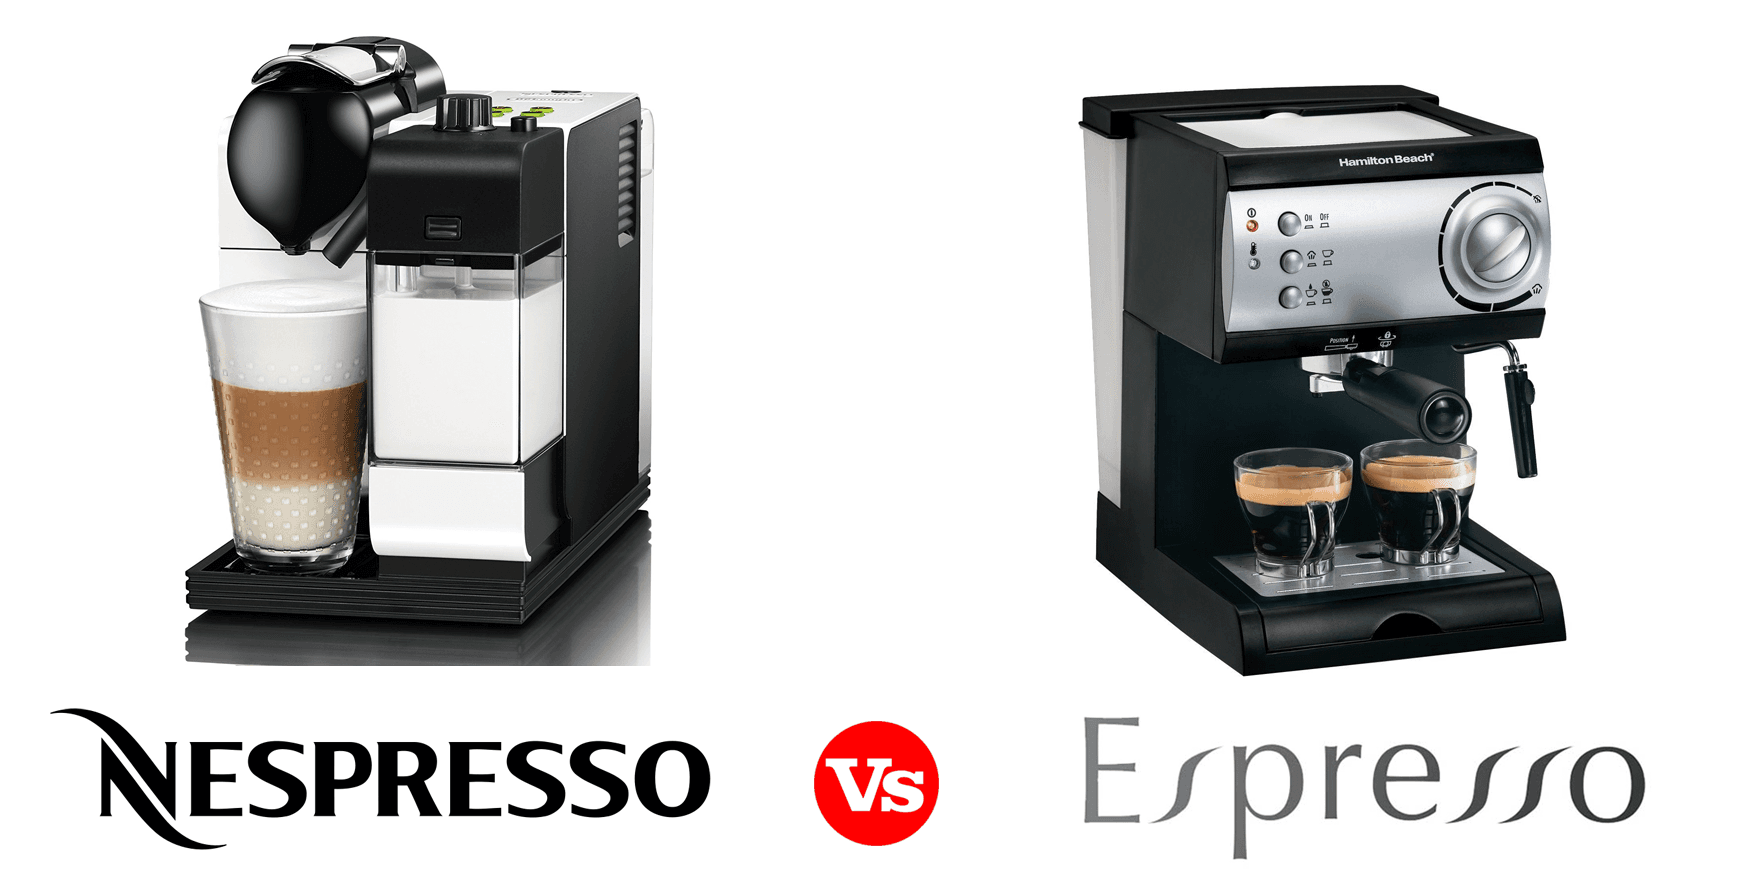 Capsule coffee machines - choose correctly